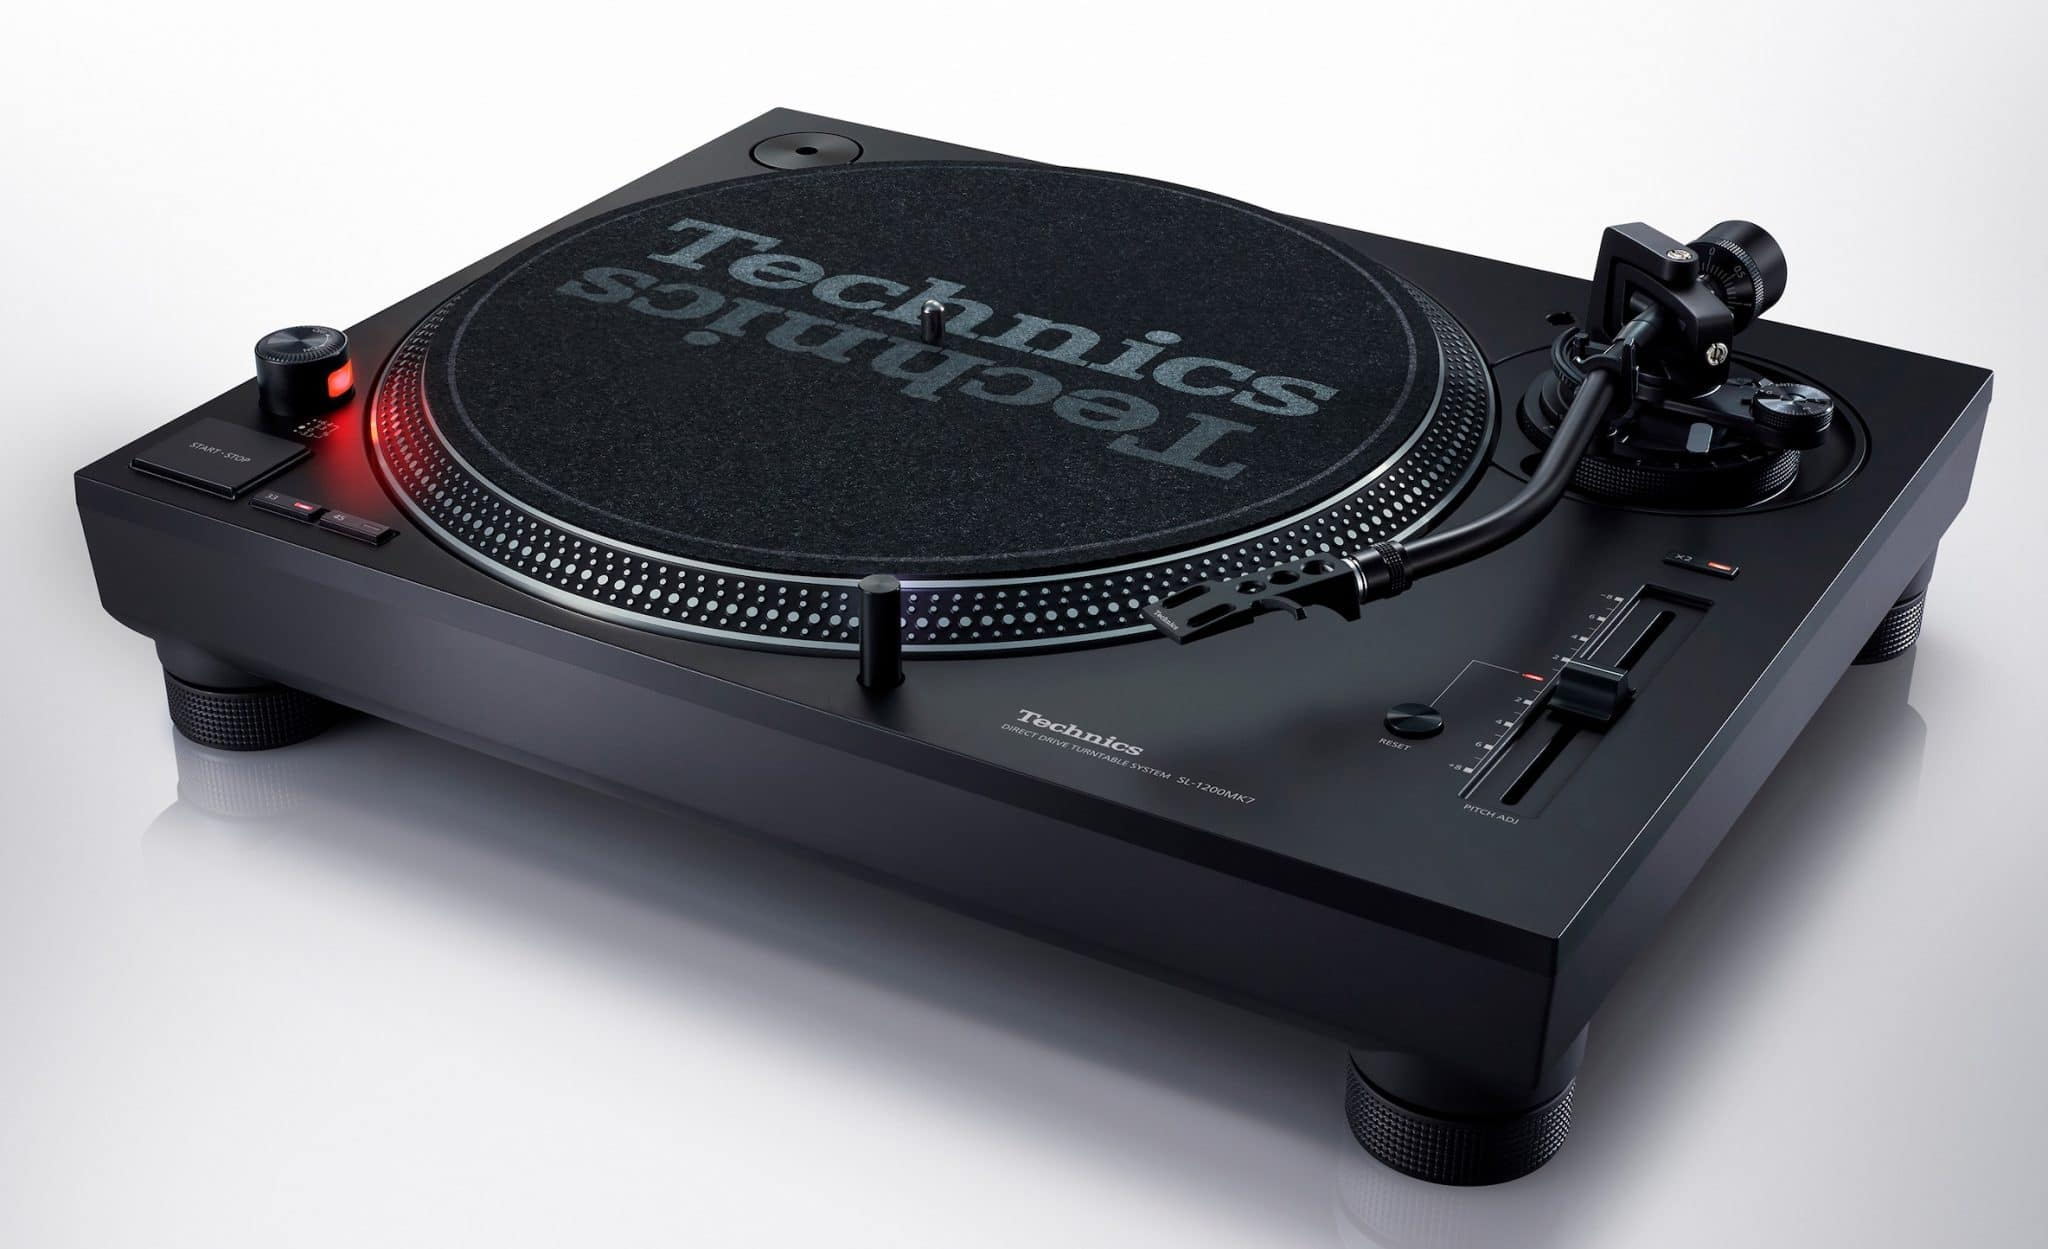 SL-1210MK7 Turntable From Technics